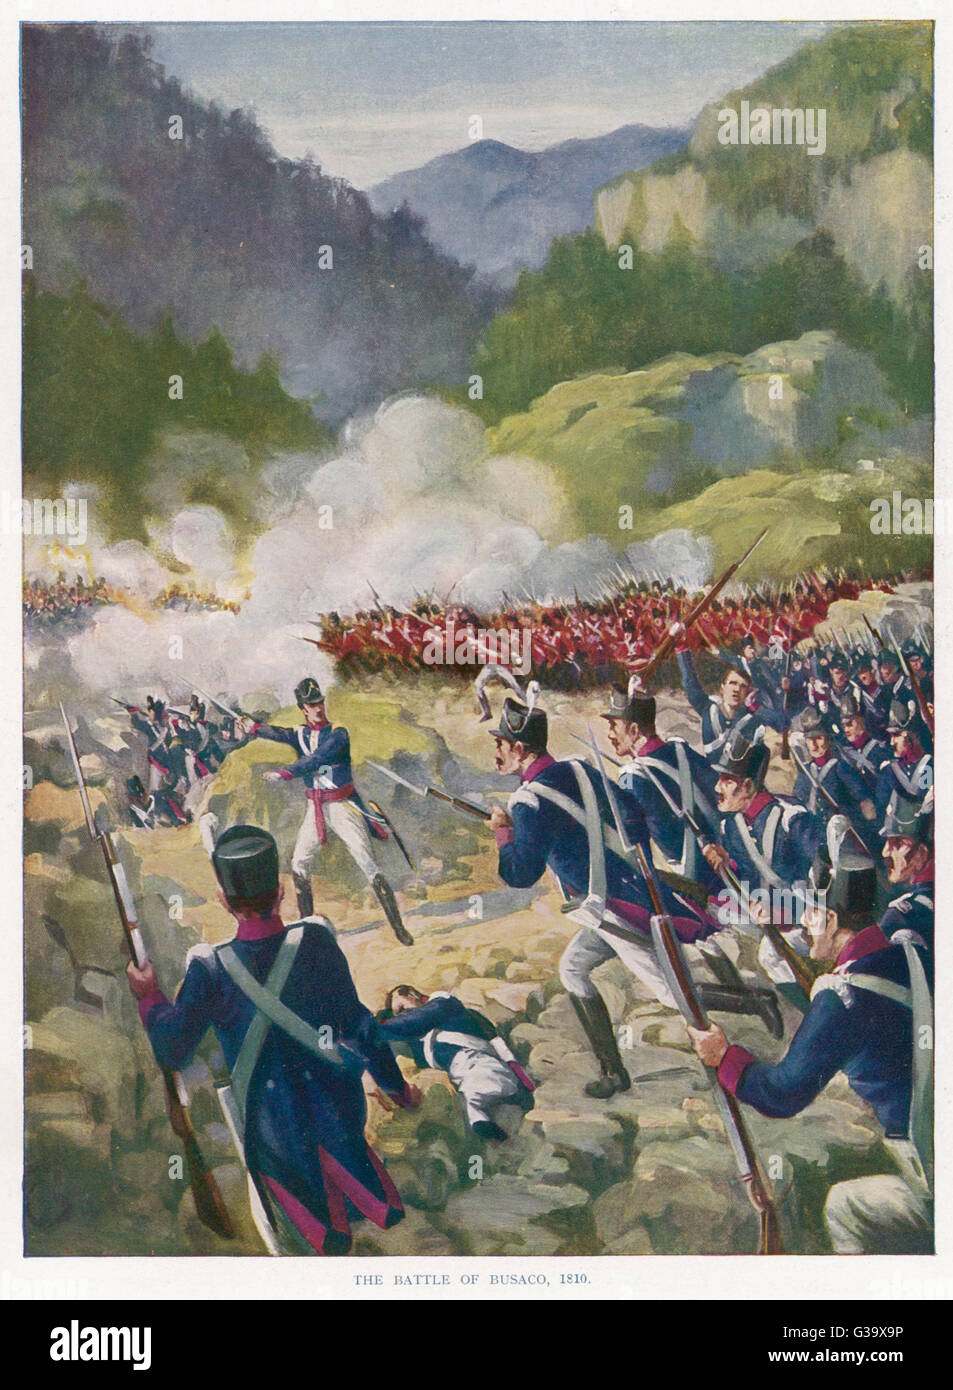 At the battle of BUSACO   Wellington's men defeat a  French army more than twice as  large, securing a safe - Stock Image